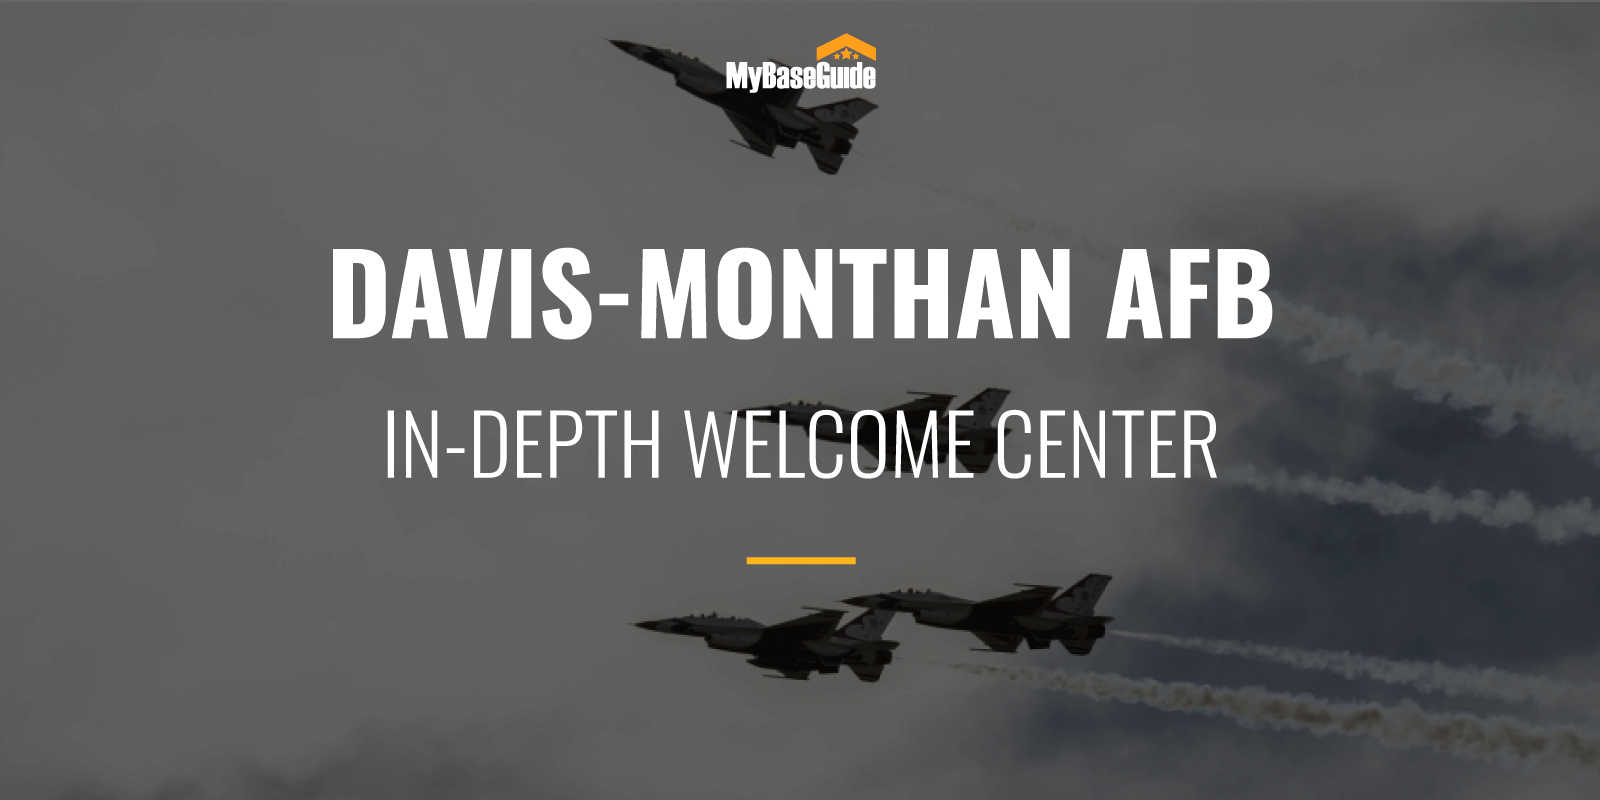 Davis-Monthan AFB: In-Depth Welcome Center